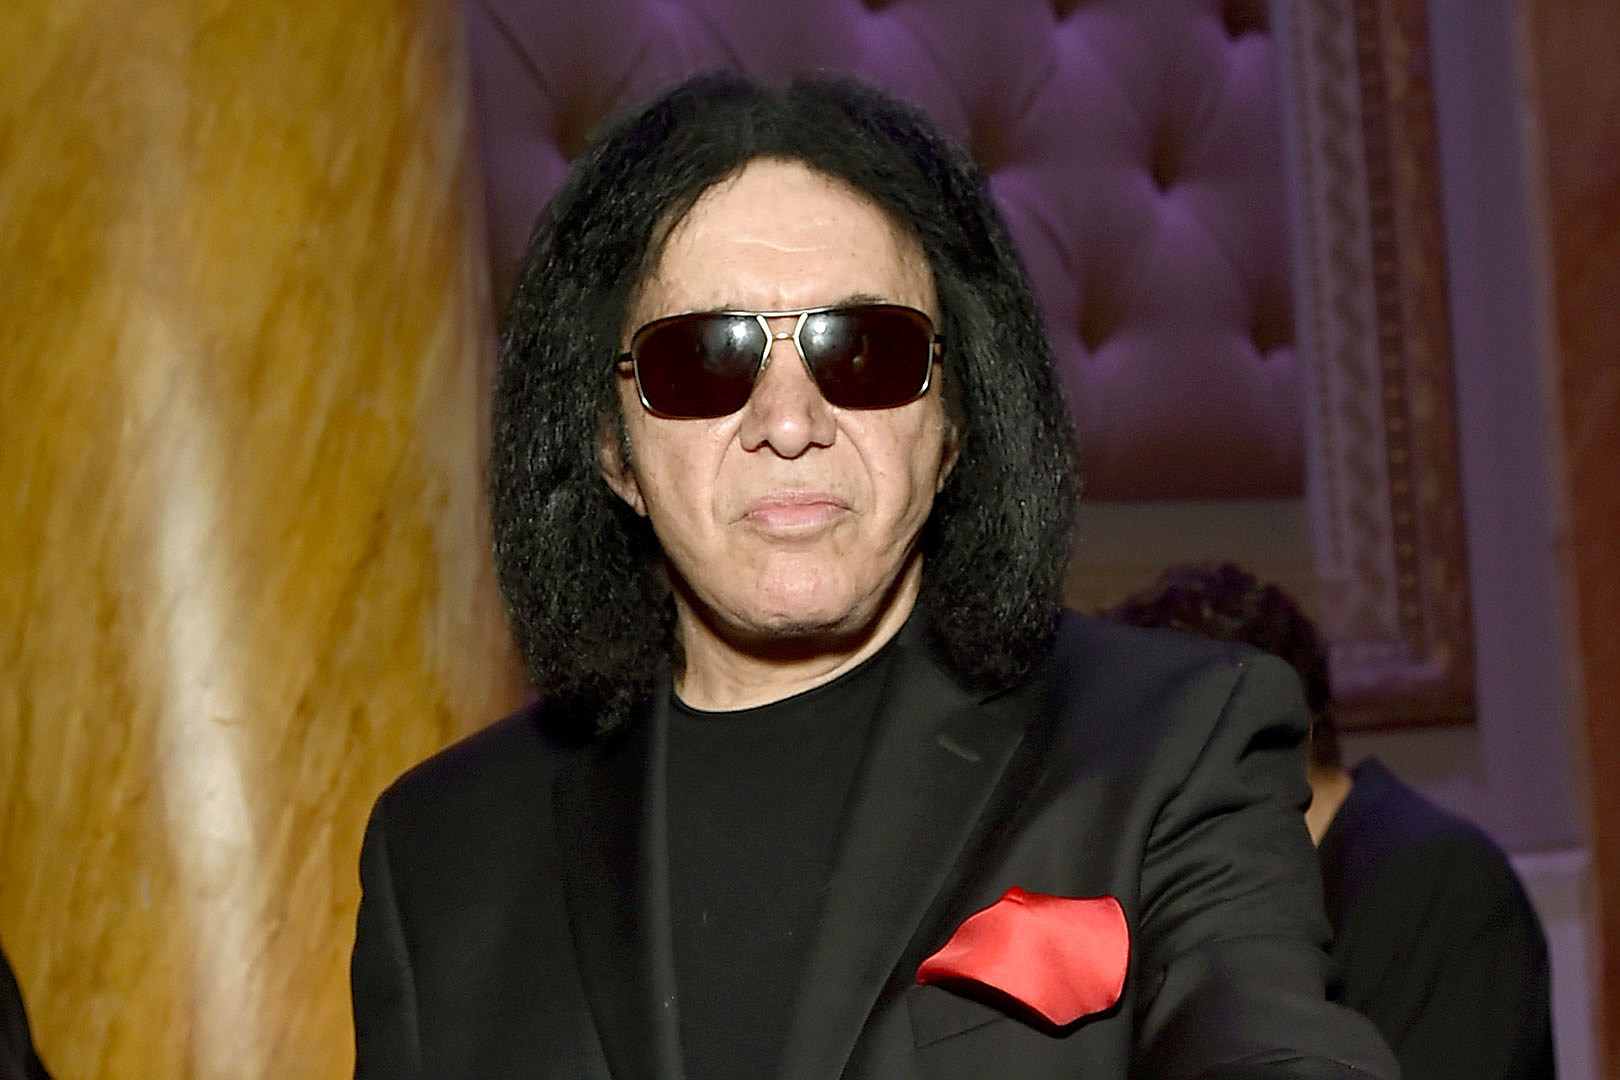 Gene Simmons: 'I Did Nothing' to Warrant Fox News Ban